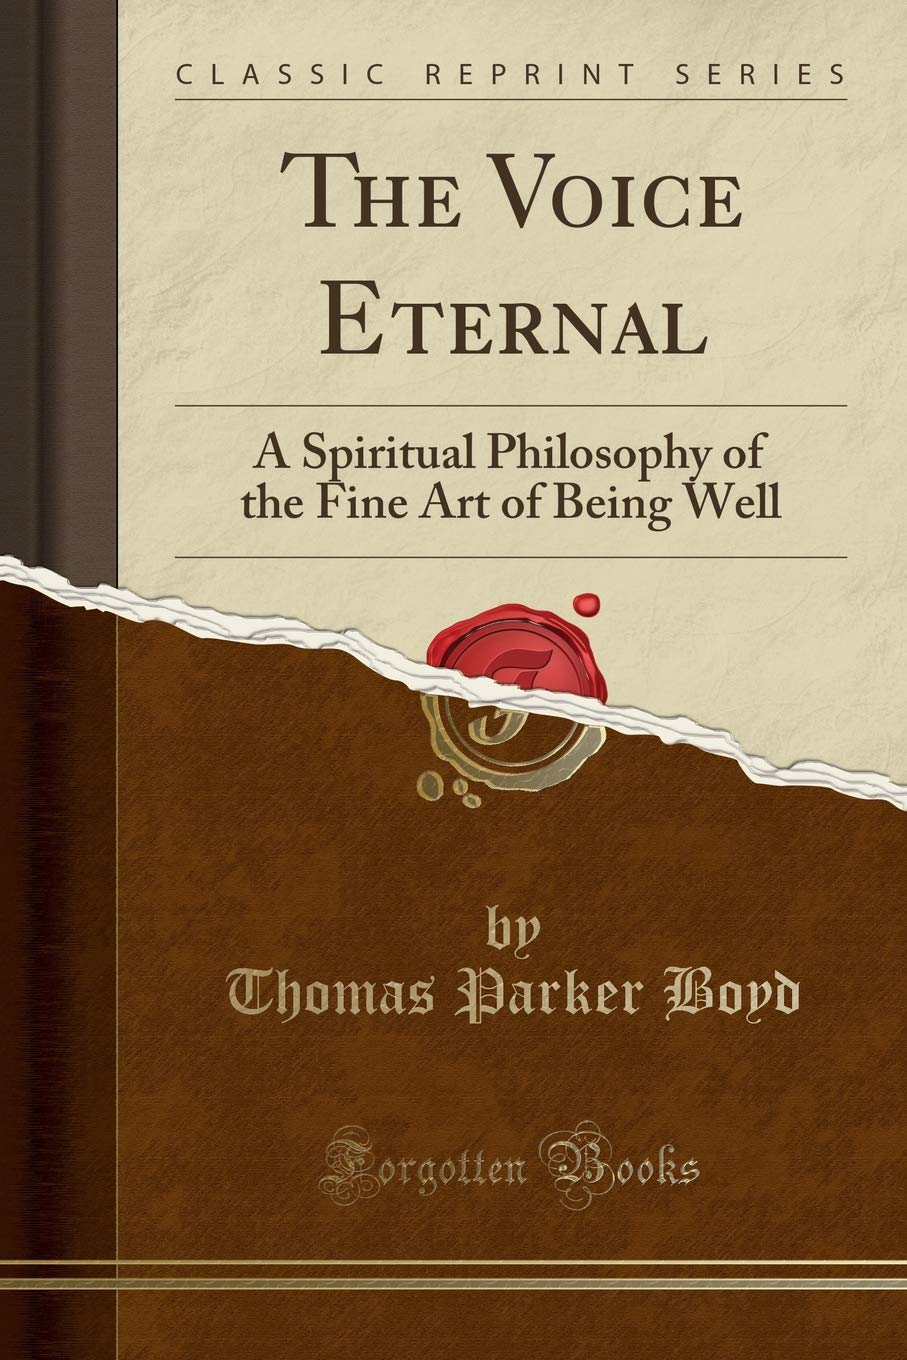 The Voice Eternal: A Spiritual Philosophy of the Fine Art of Being Well (Classic Reprint) pdf epub